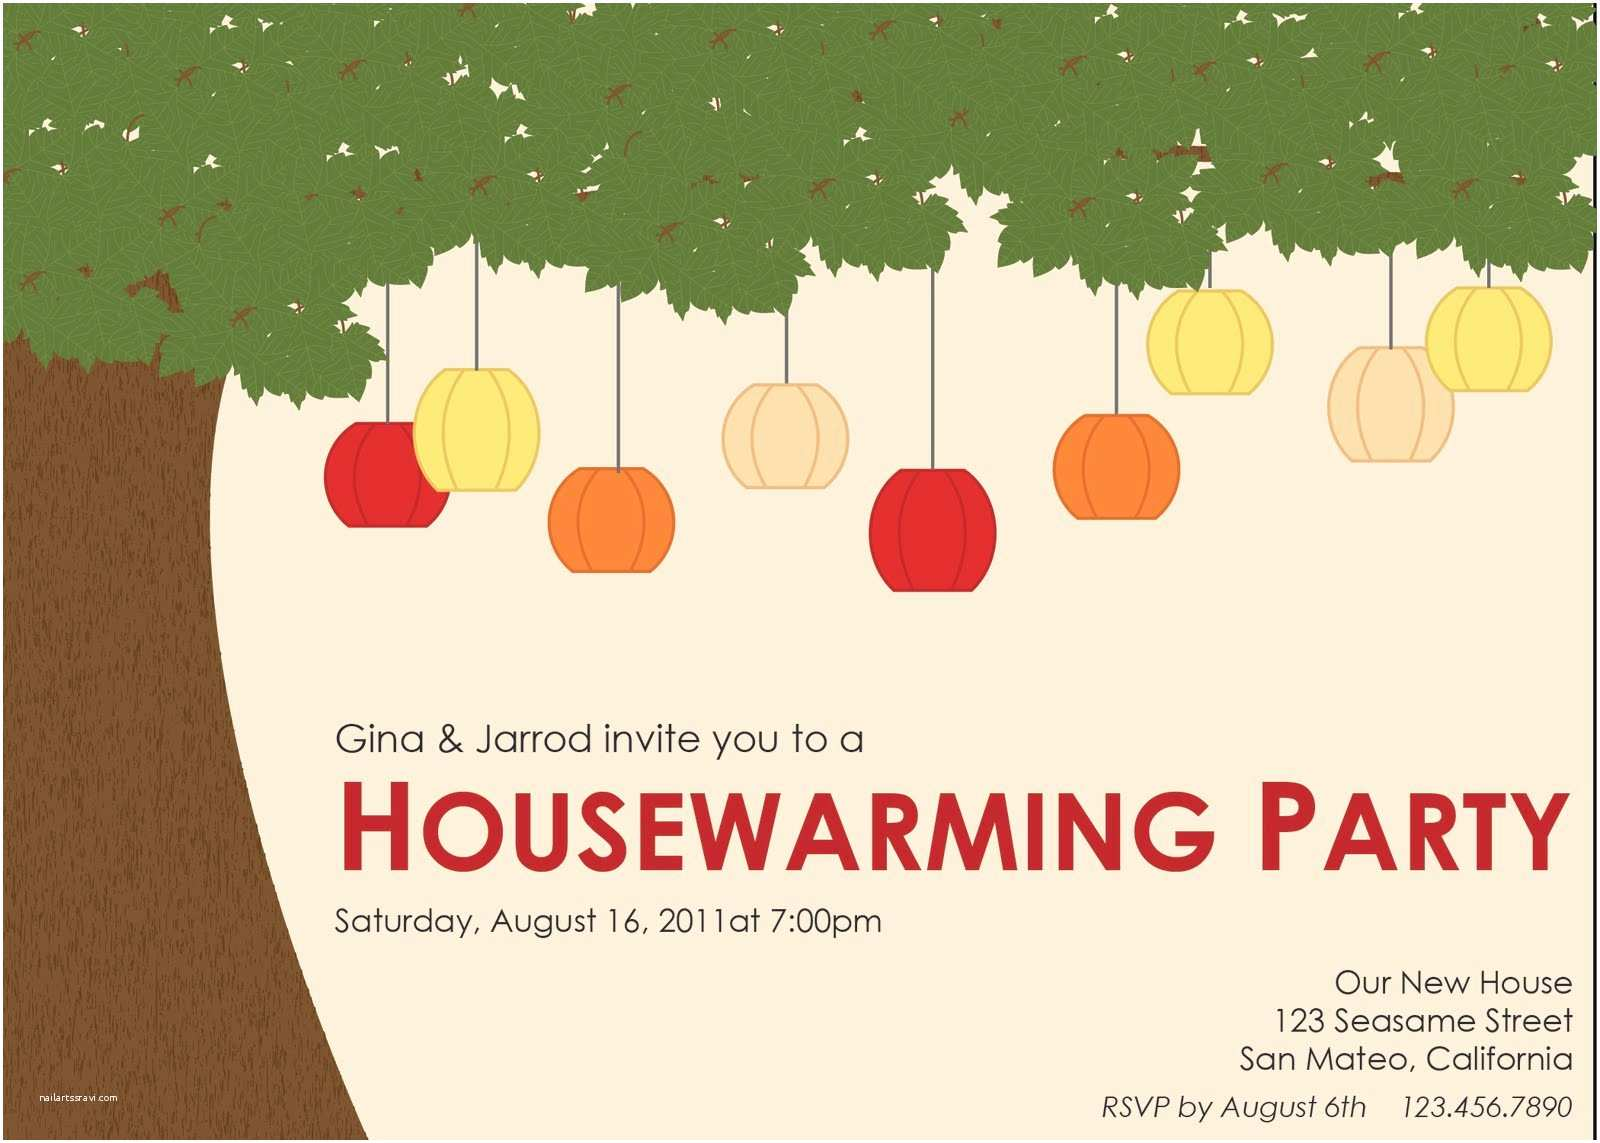 Housewarming Party Invitation Template Lowercase J Design Housewarming Party Invitation